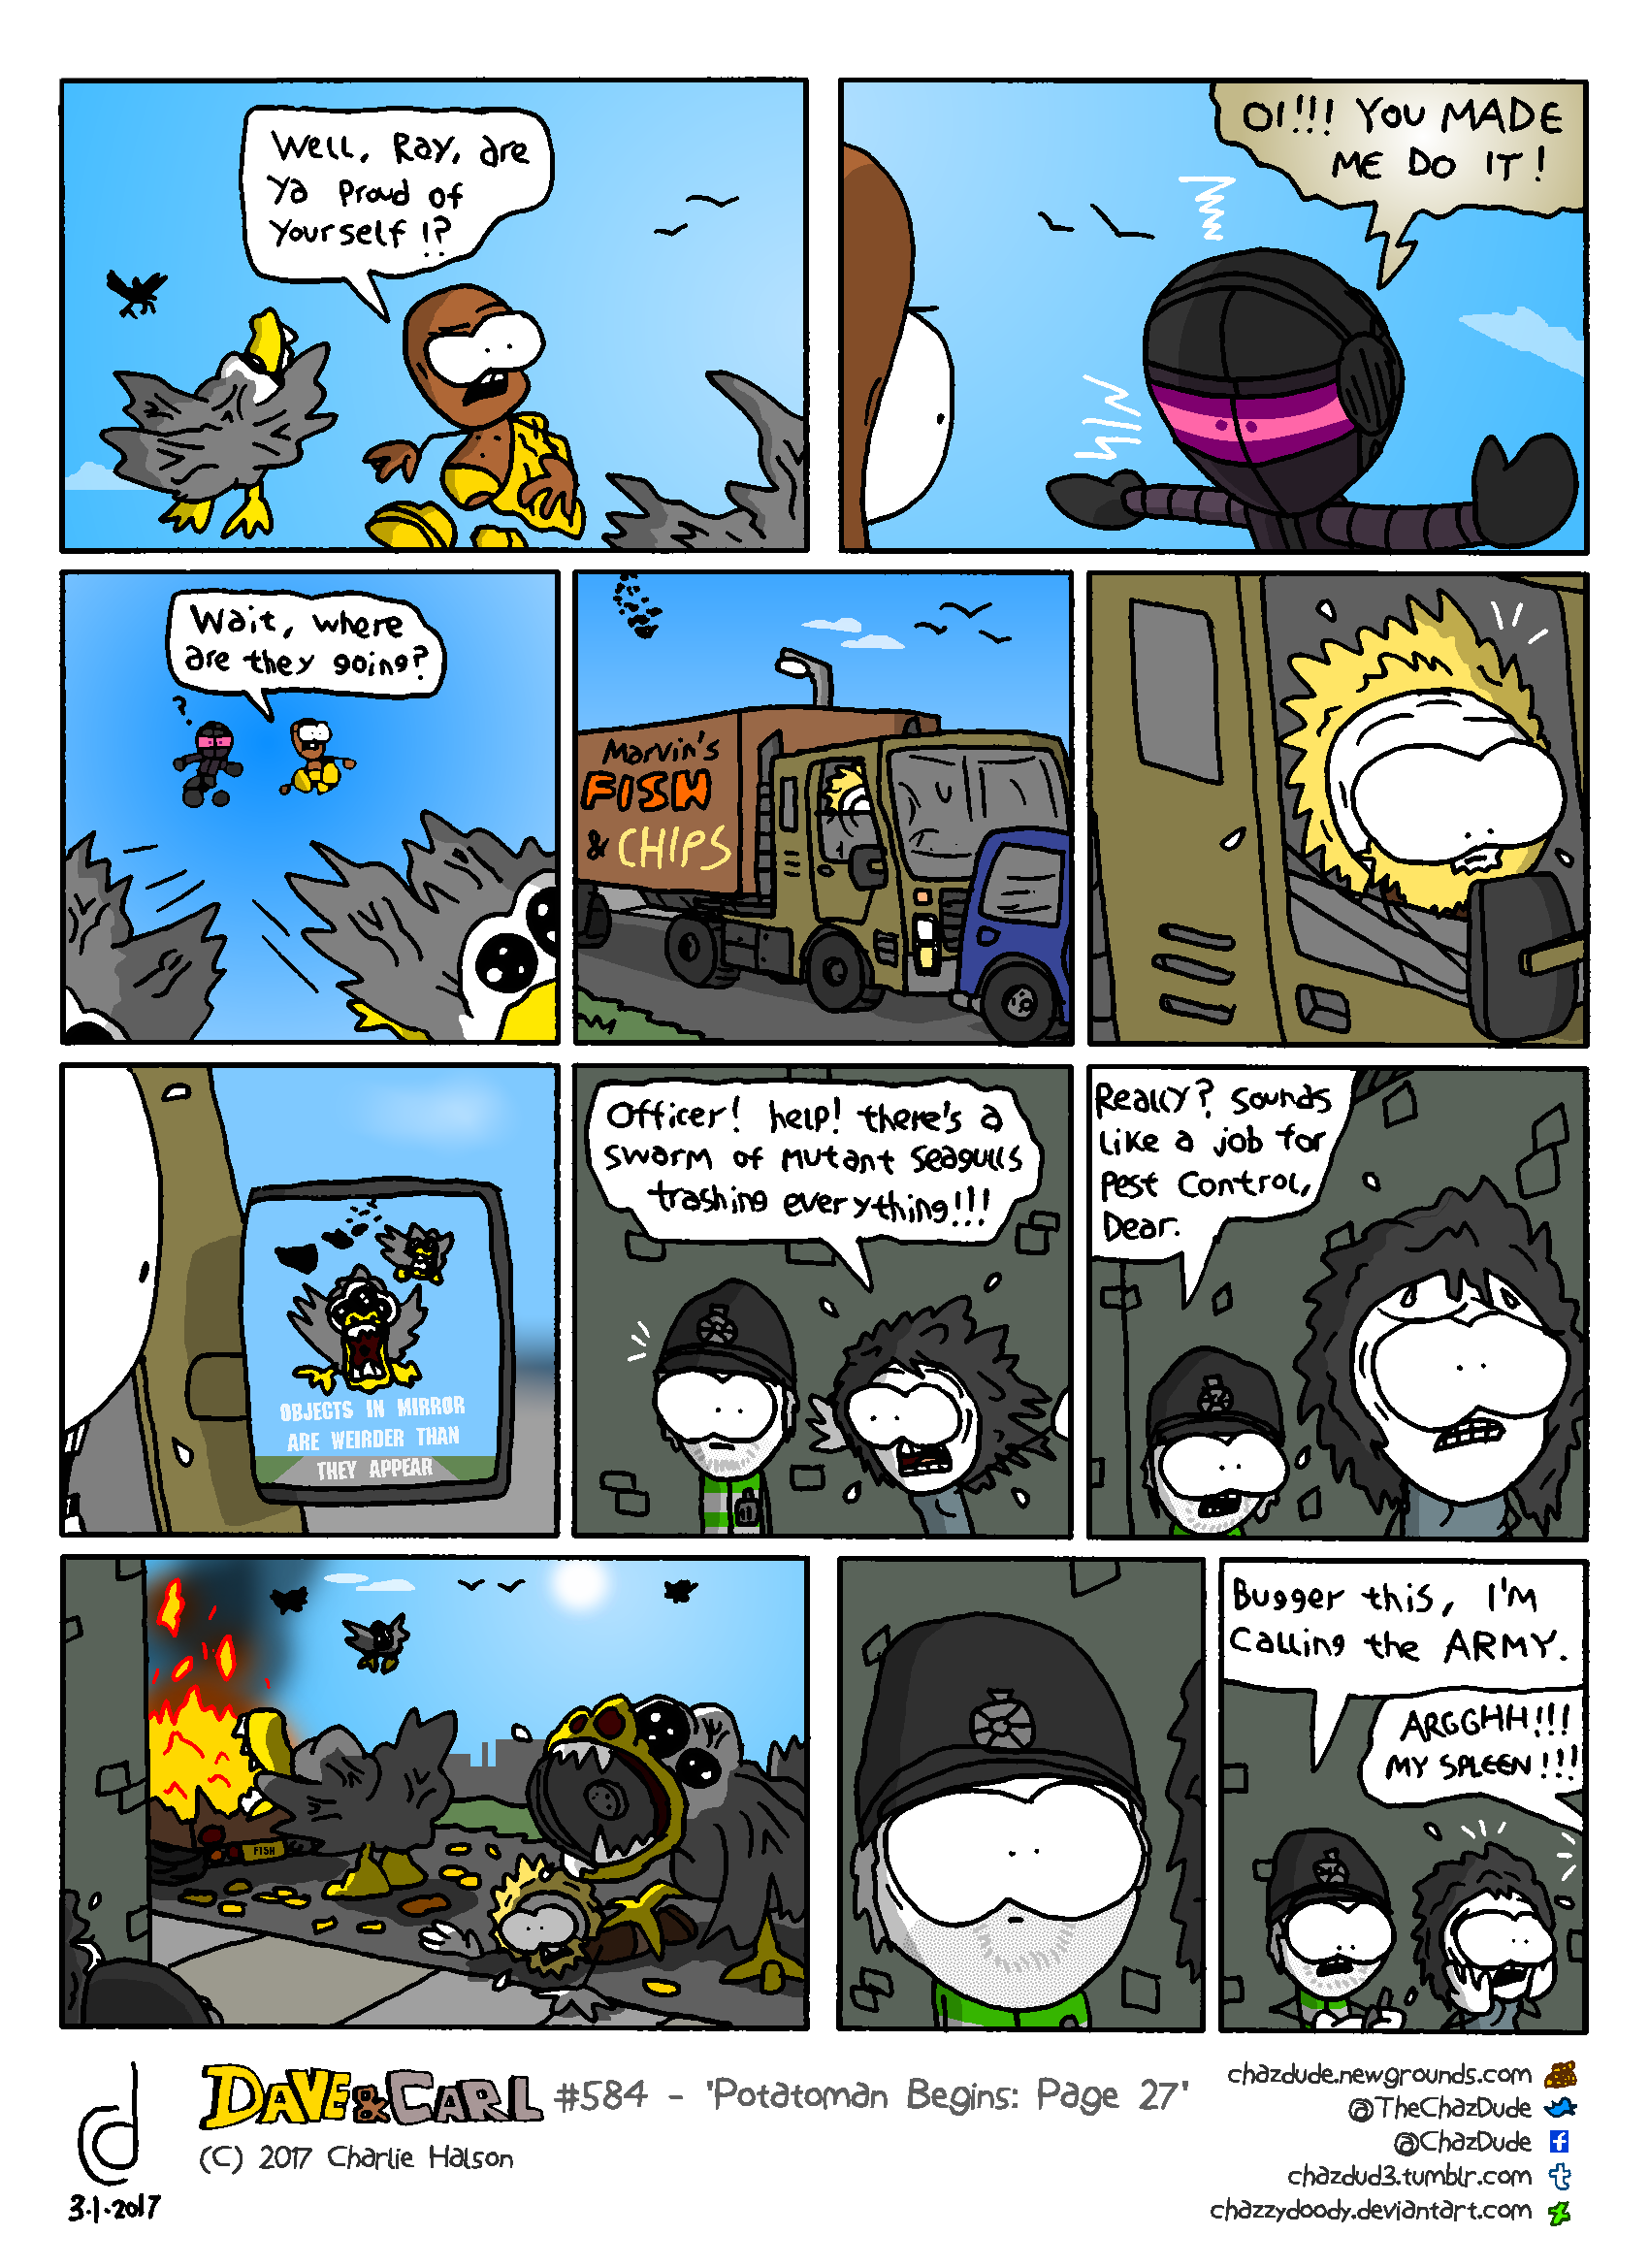 Potatoman Begins: Page 27